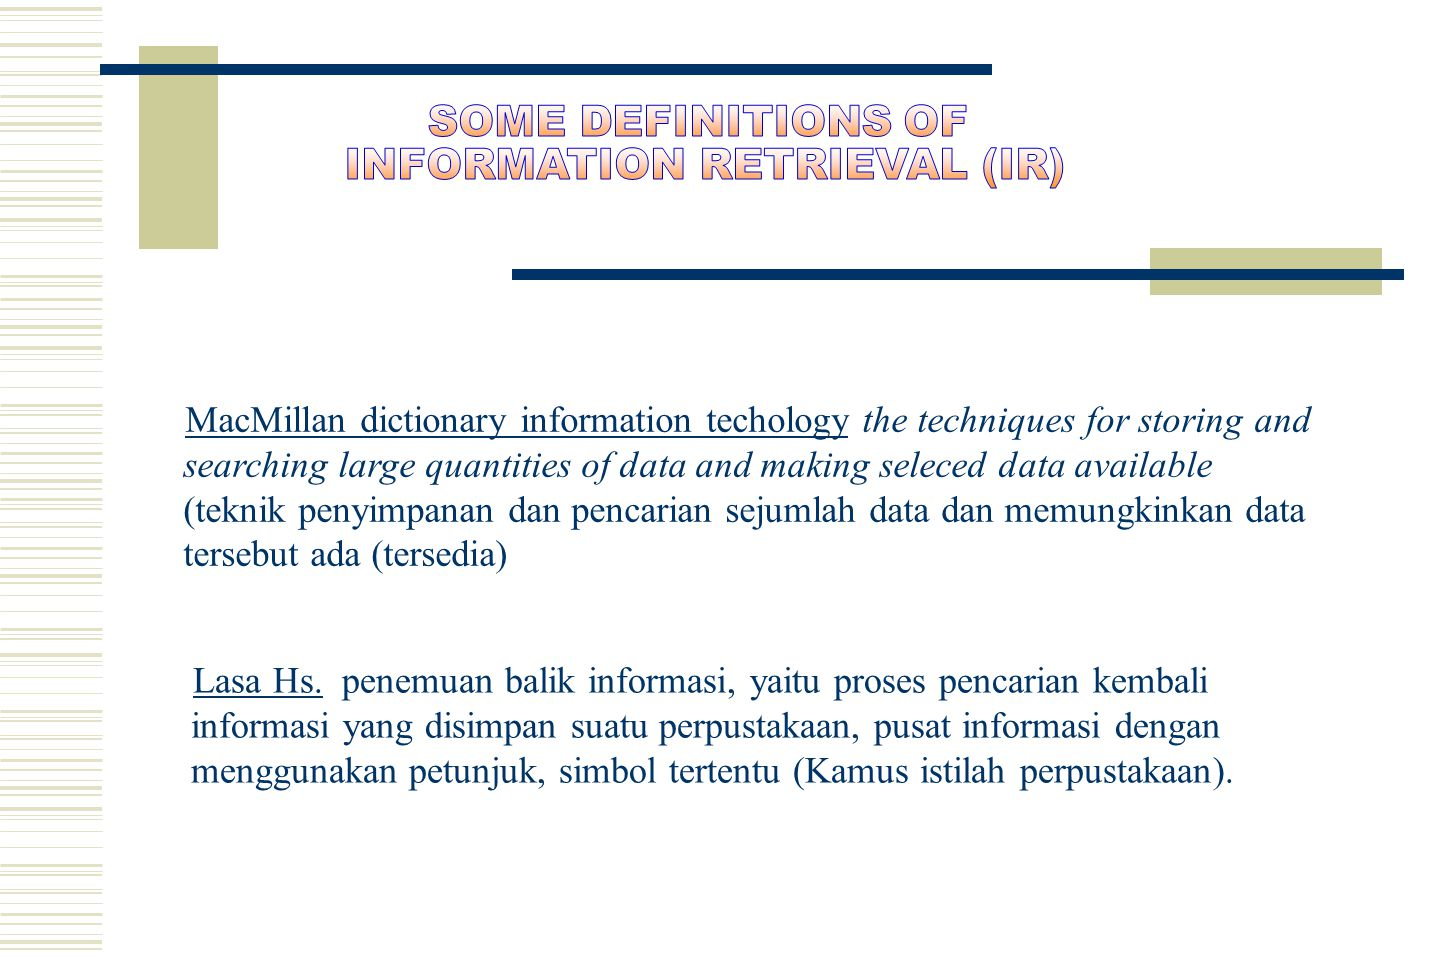 Kowalski (1997): An Information Retrieval System is a system that is capable of storage, retrieval, and maintenance of information.